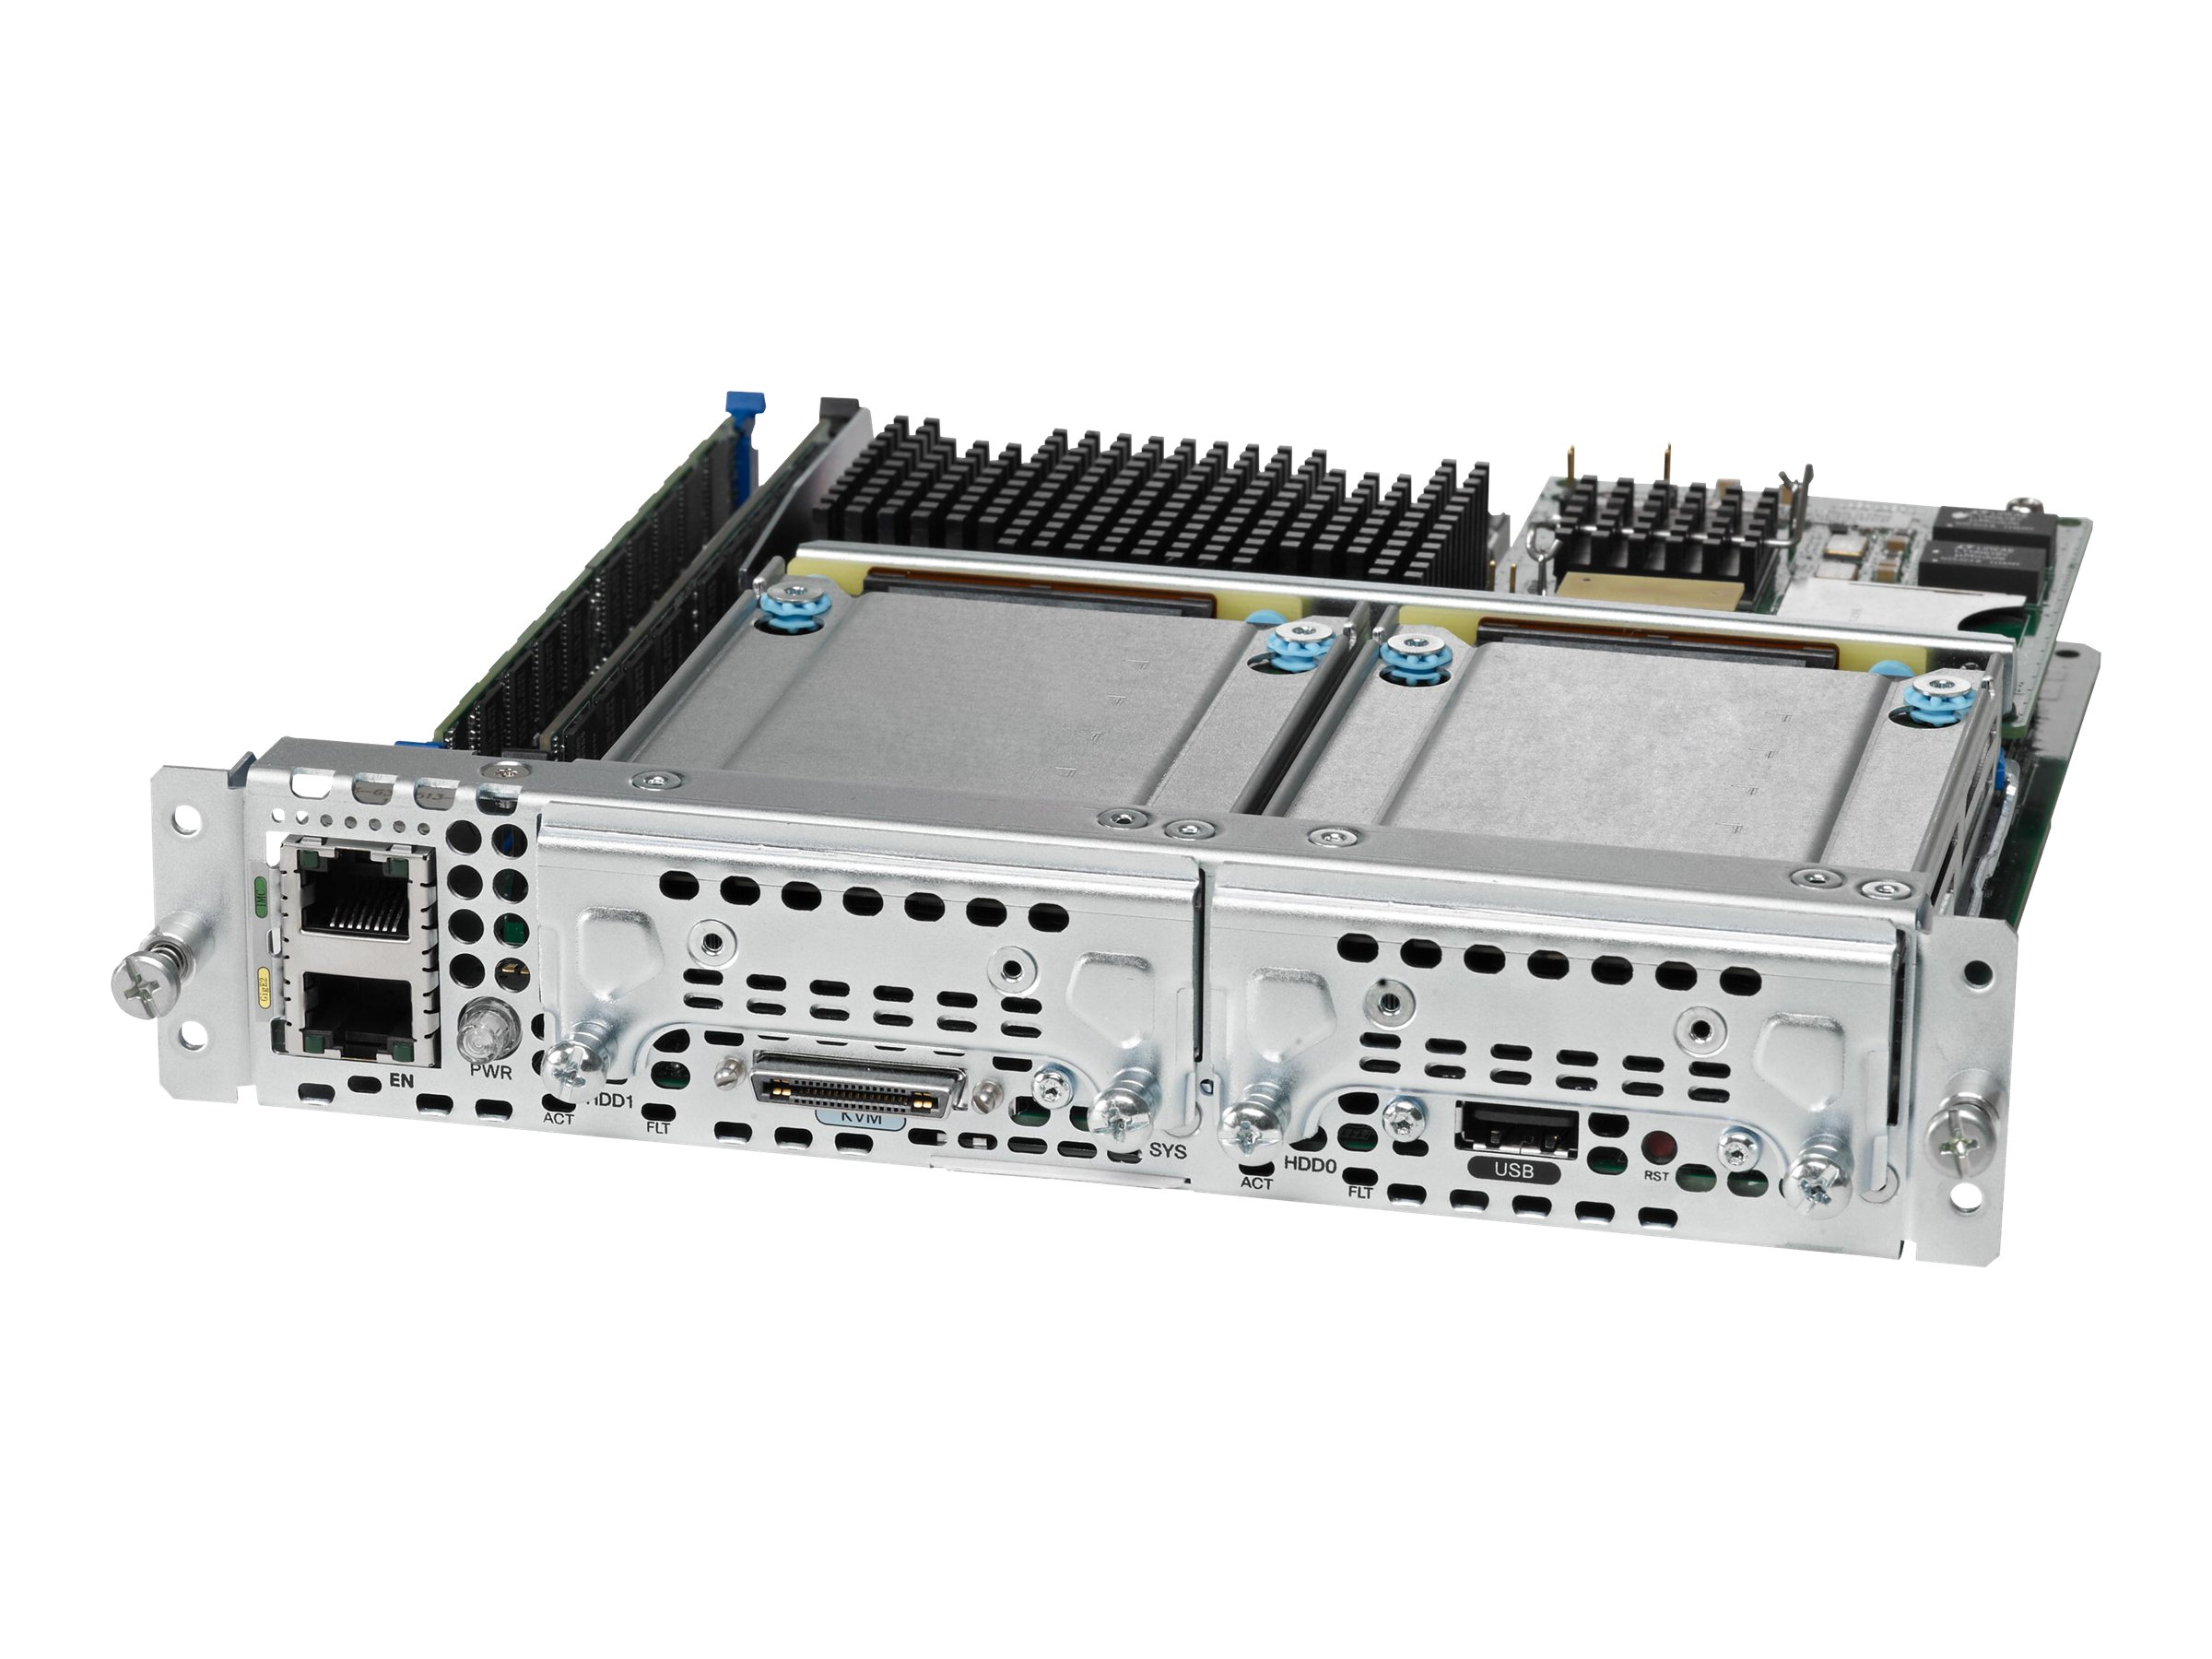 Cisco UCS E-Series Single-Wide Server Blade Xeon QC E3 1100 v1 8GB 2xSD Cards, UCS-E140S-M1/K9=